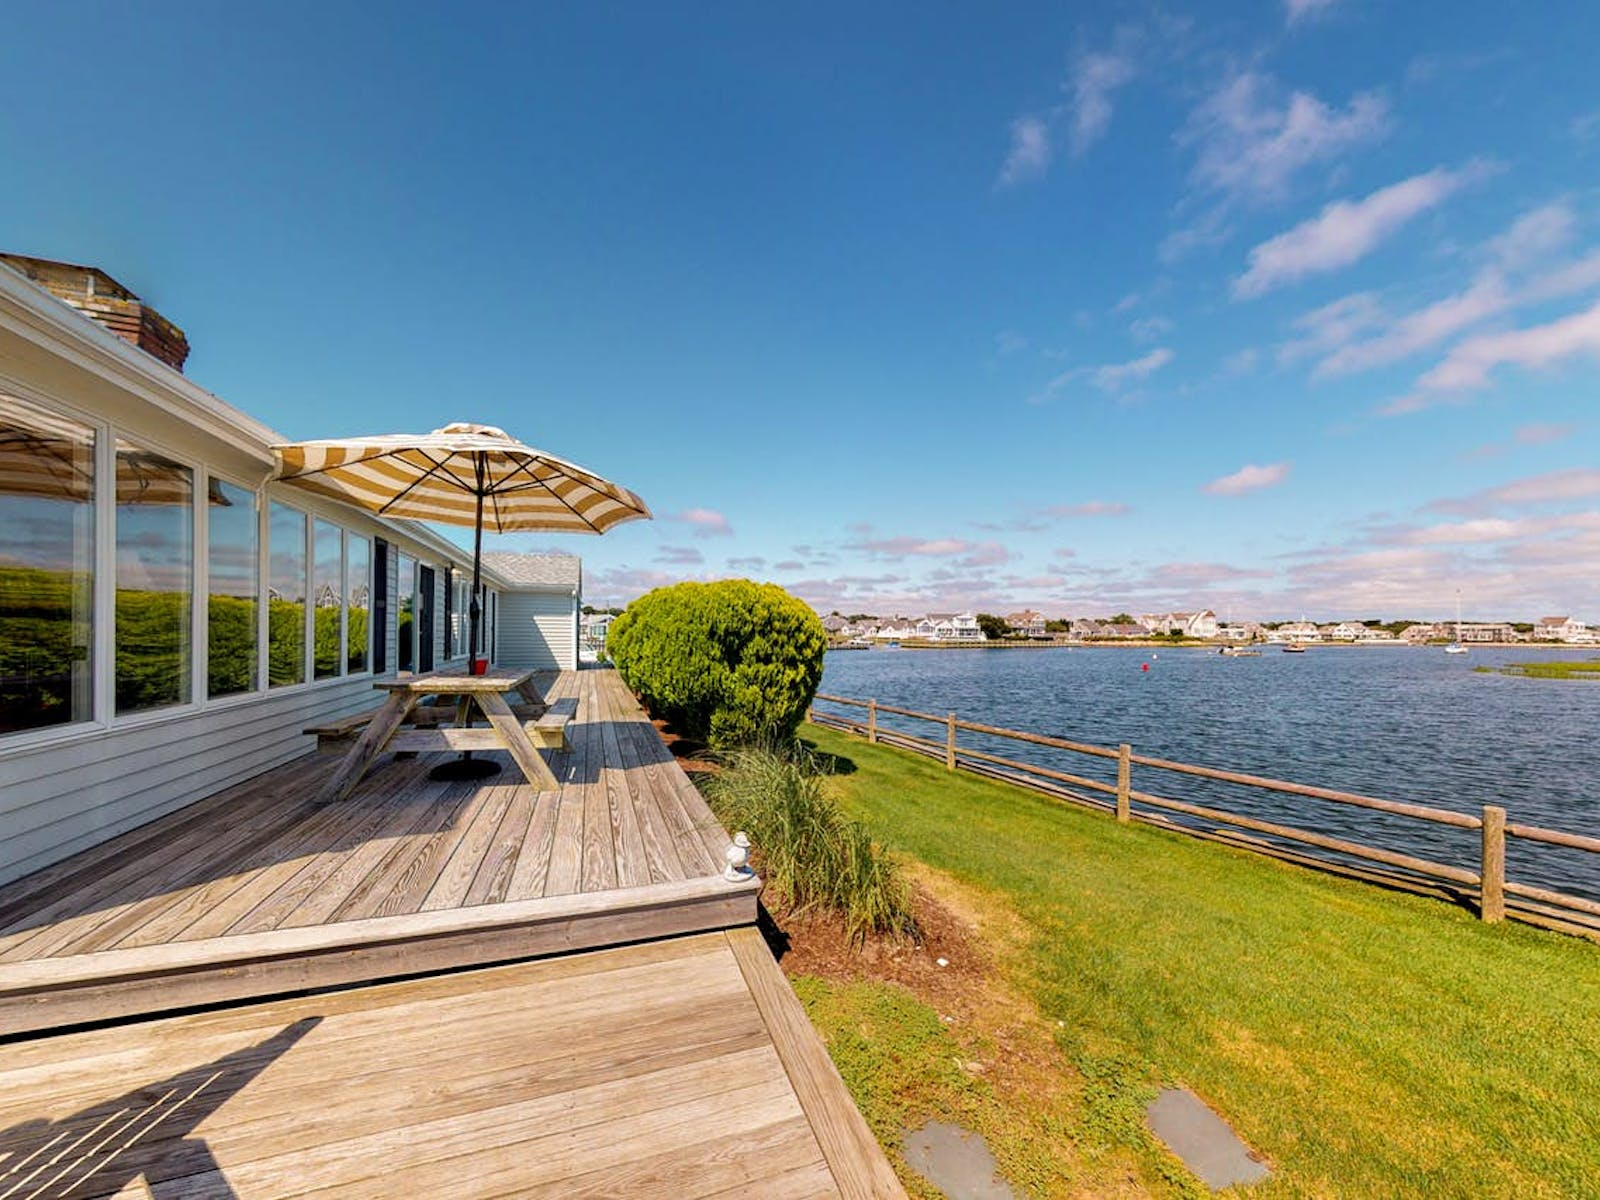 Cape Cod waterfront vacation rental back deck with view of the water